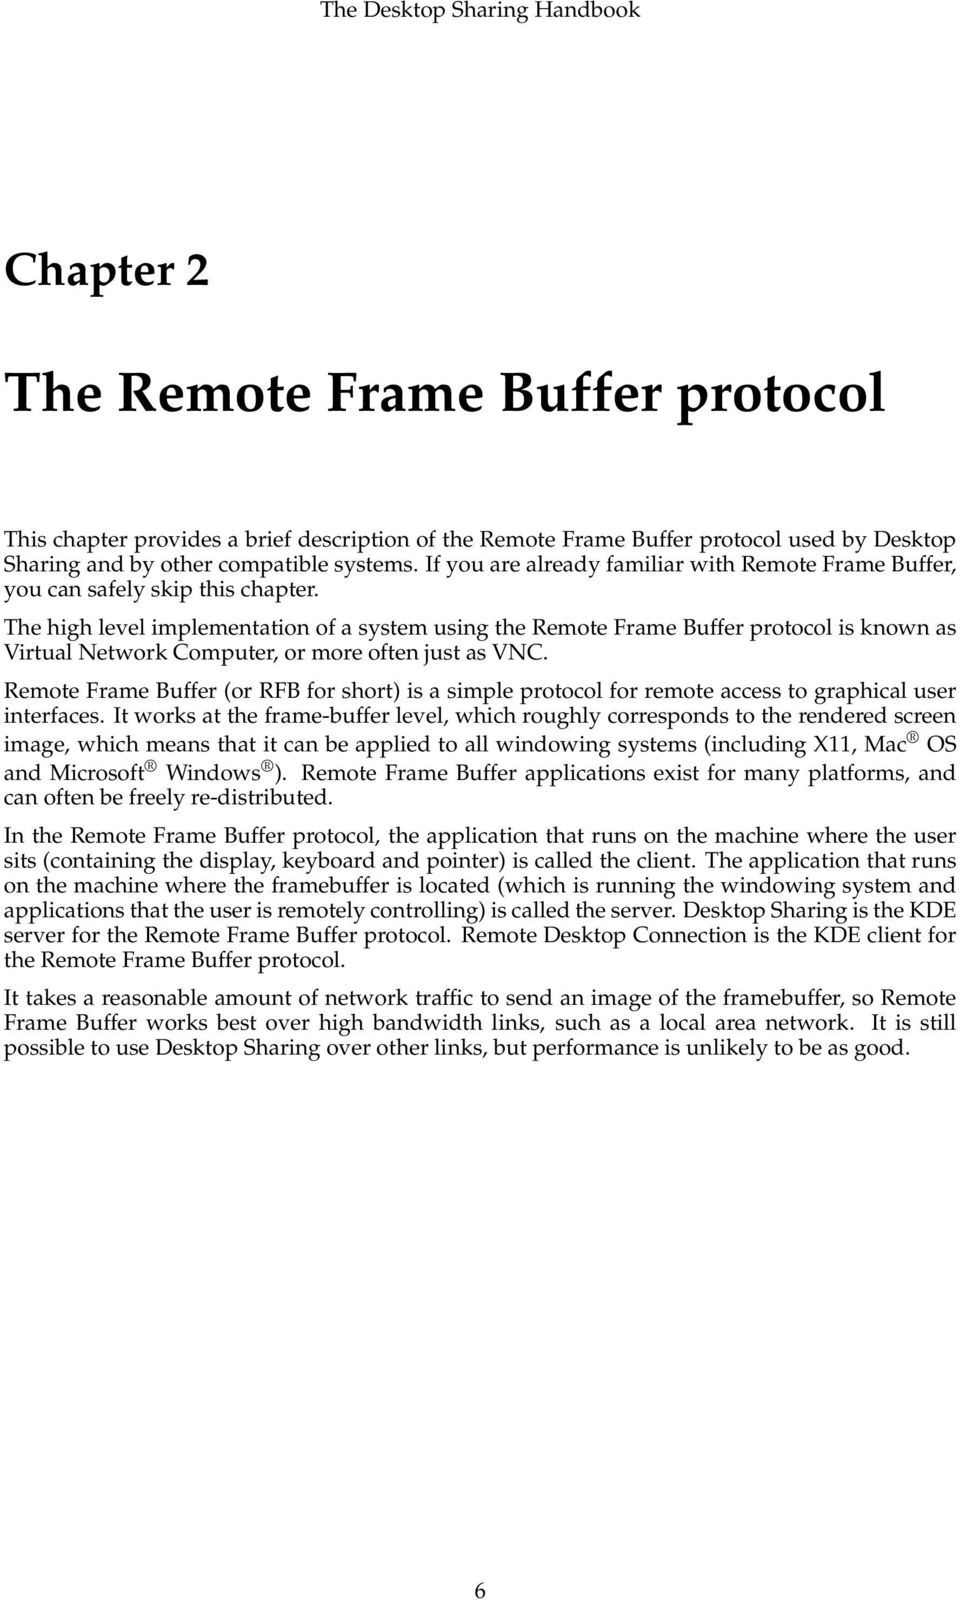 The high level implementation of a system using the Remote Frame Buffer protocol is known as Virtual Network Computer, or more often just as VNC.